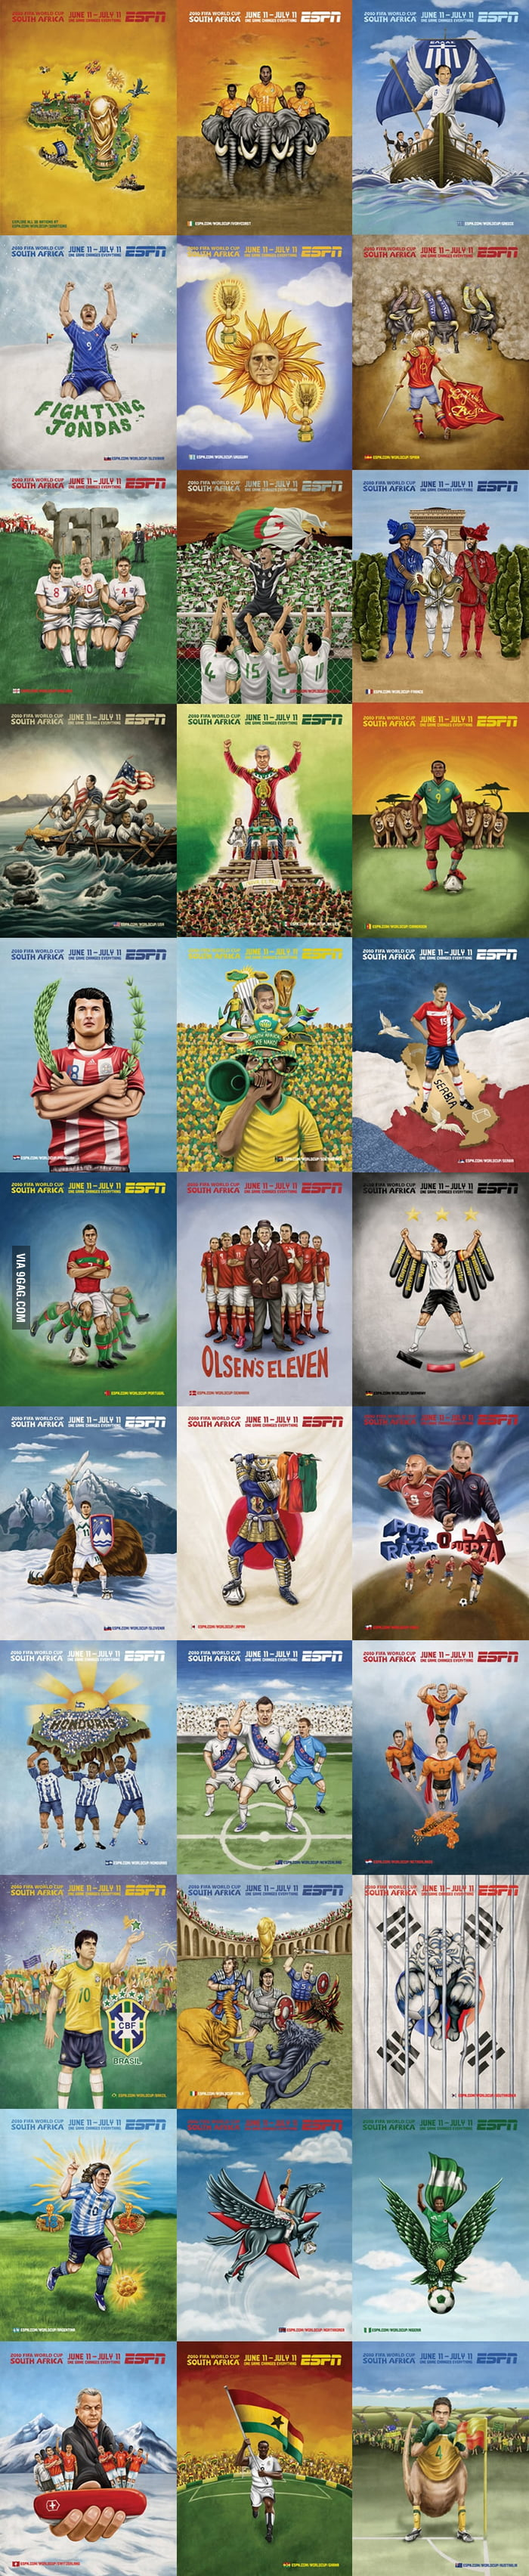 2010 FIFA World Cup Illustrations